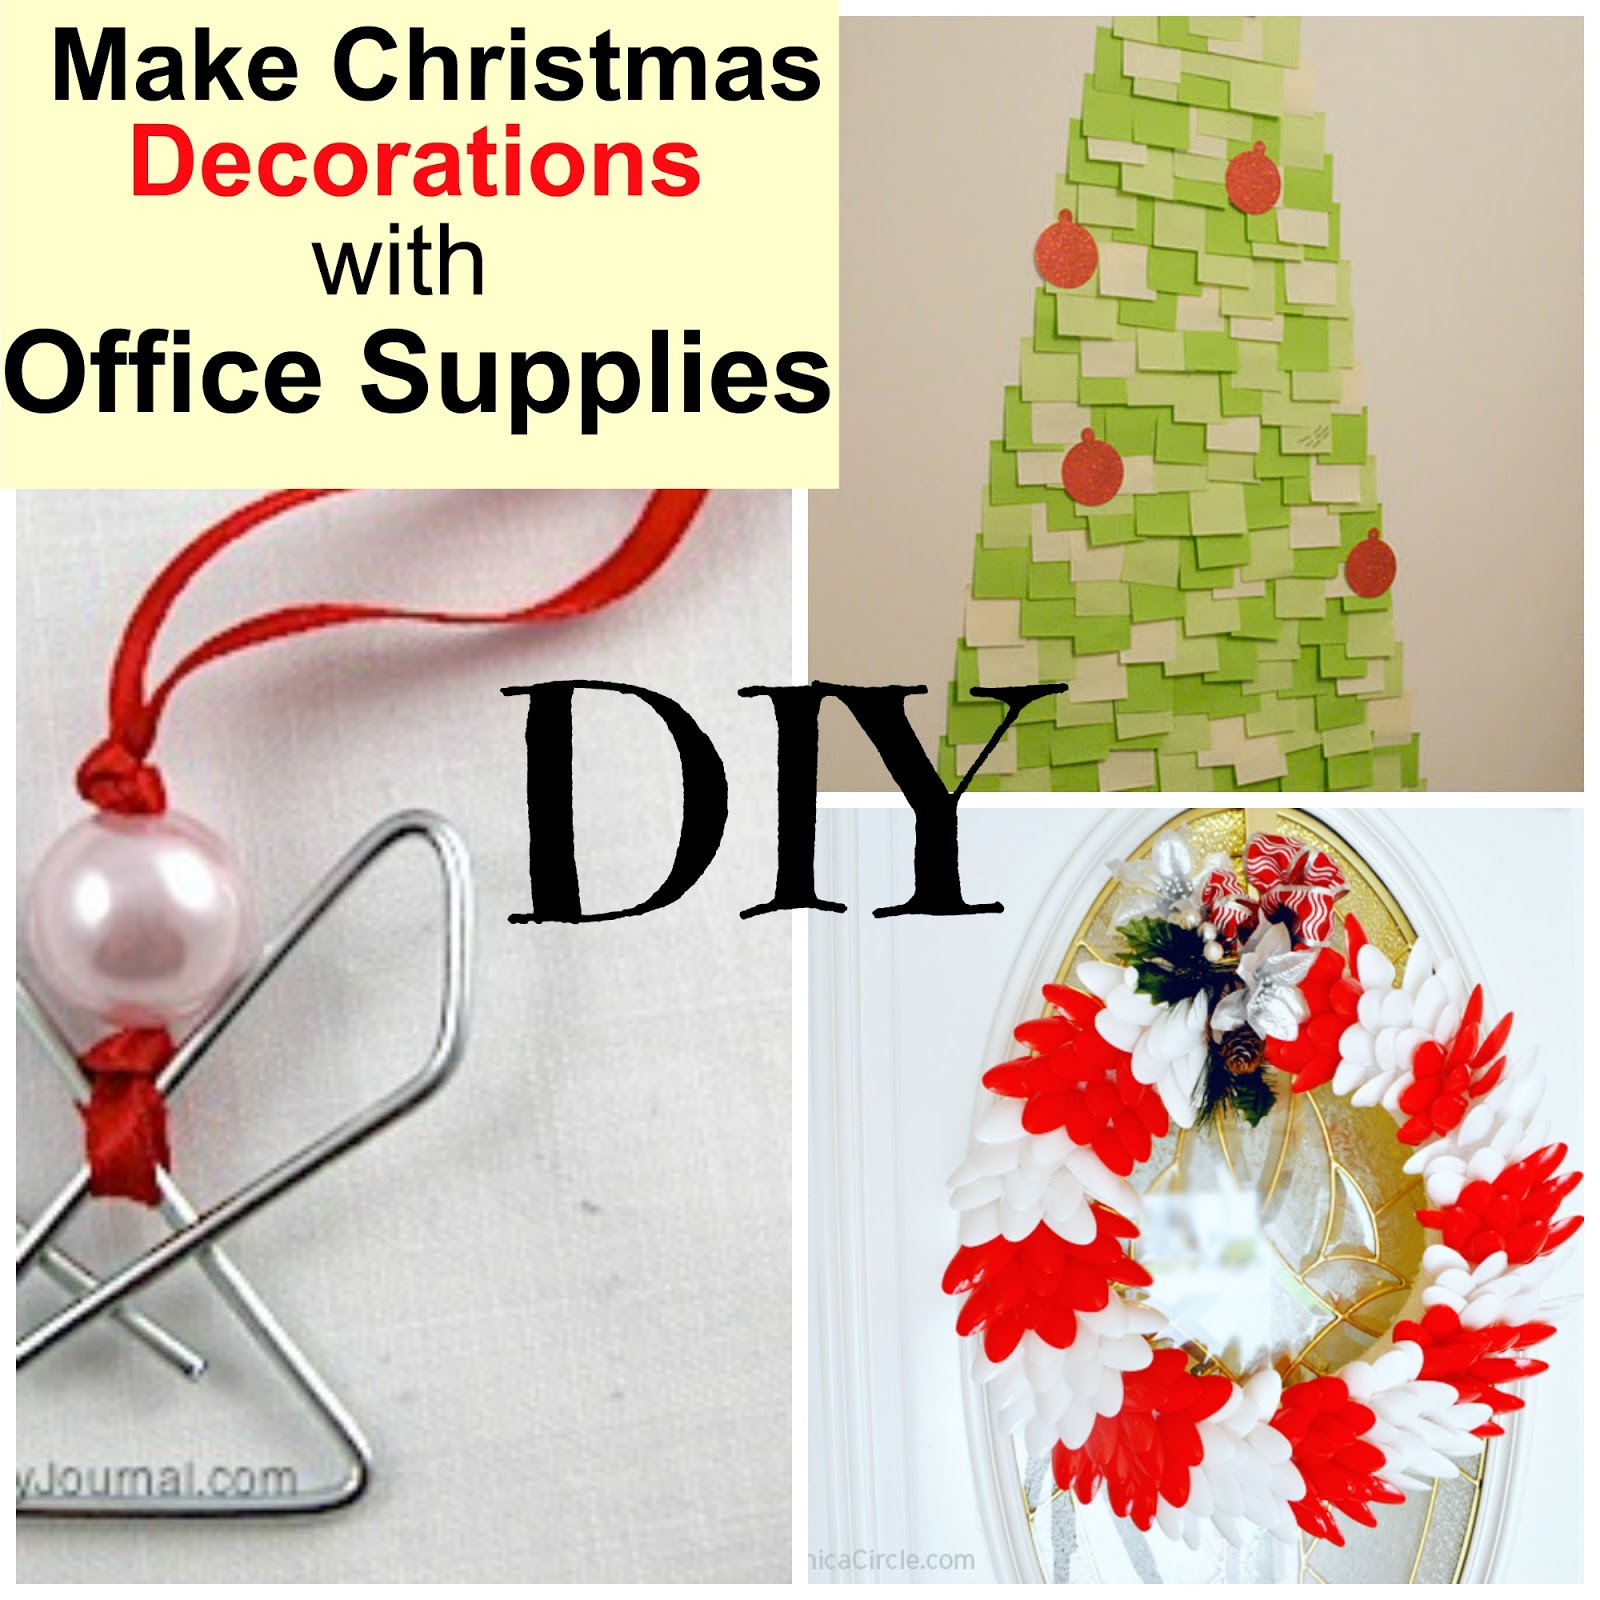 DIY Office Supplies Christmas Decorations Is Just Around The Corner Ok So Halloween Hasnt Arrived Yet But Who Doesnt Love